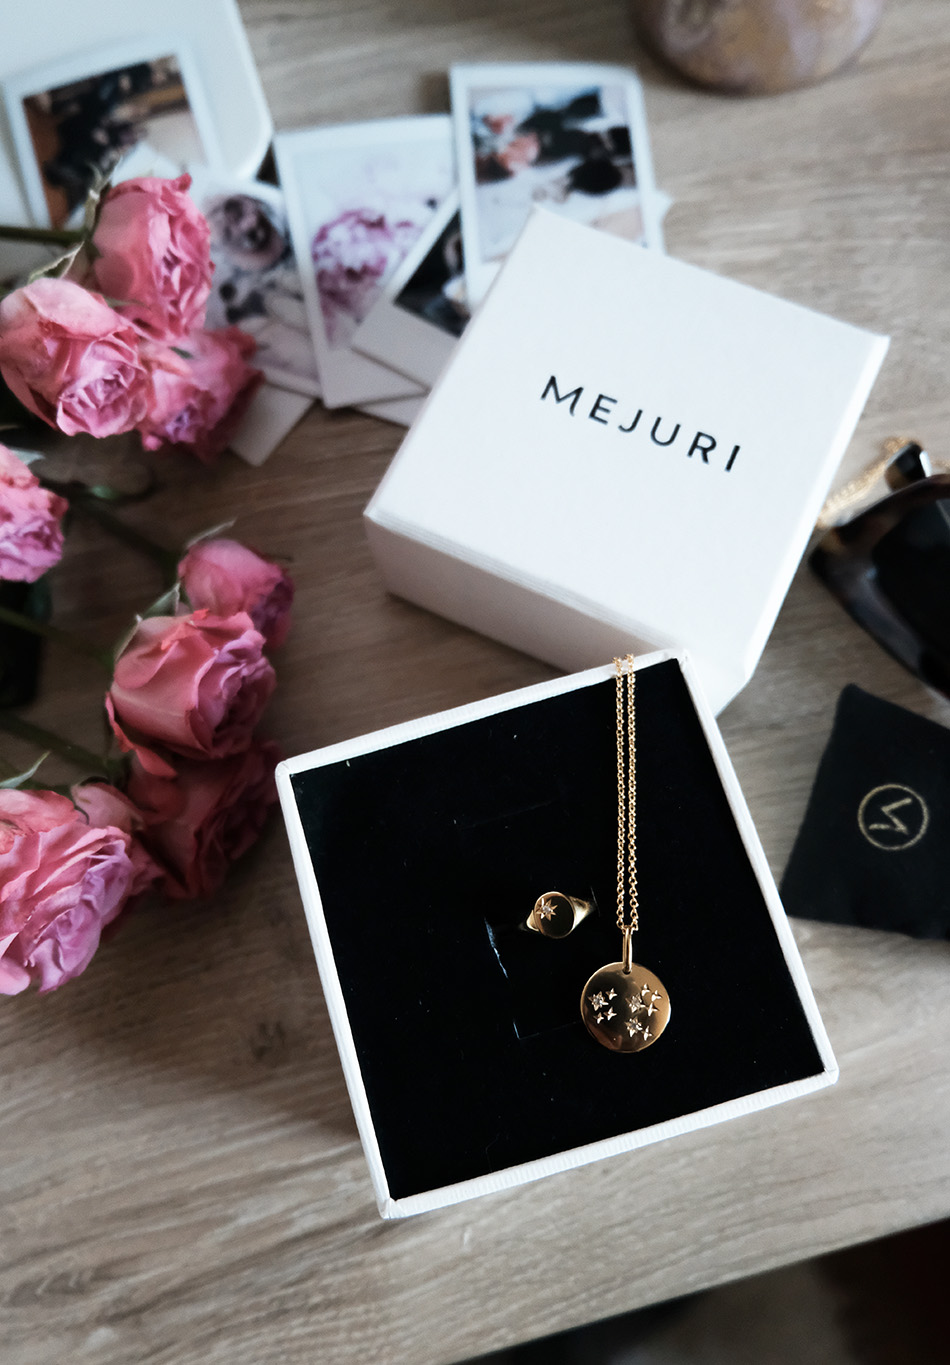 mejuri jewelry review